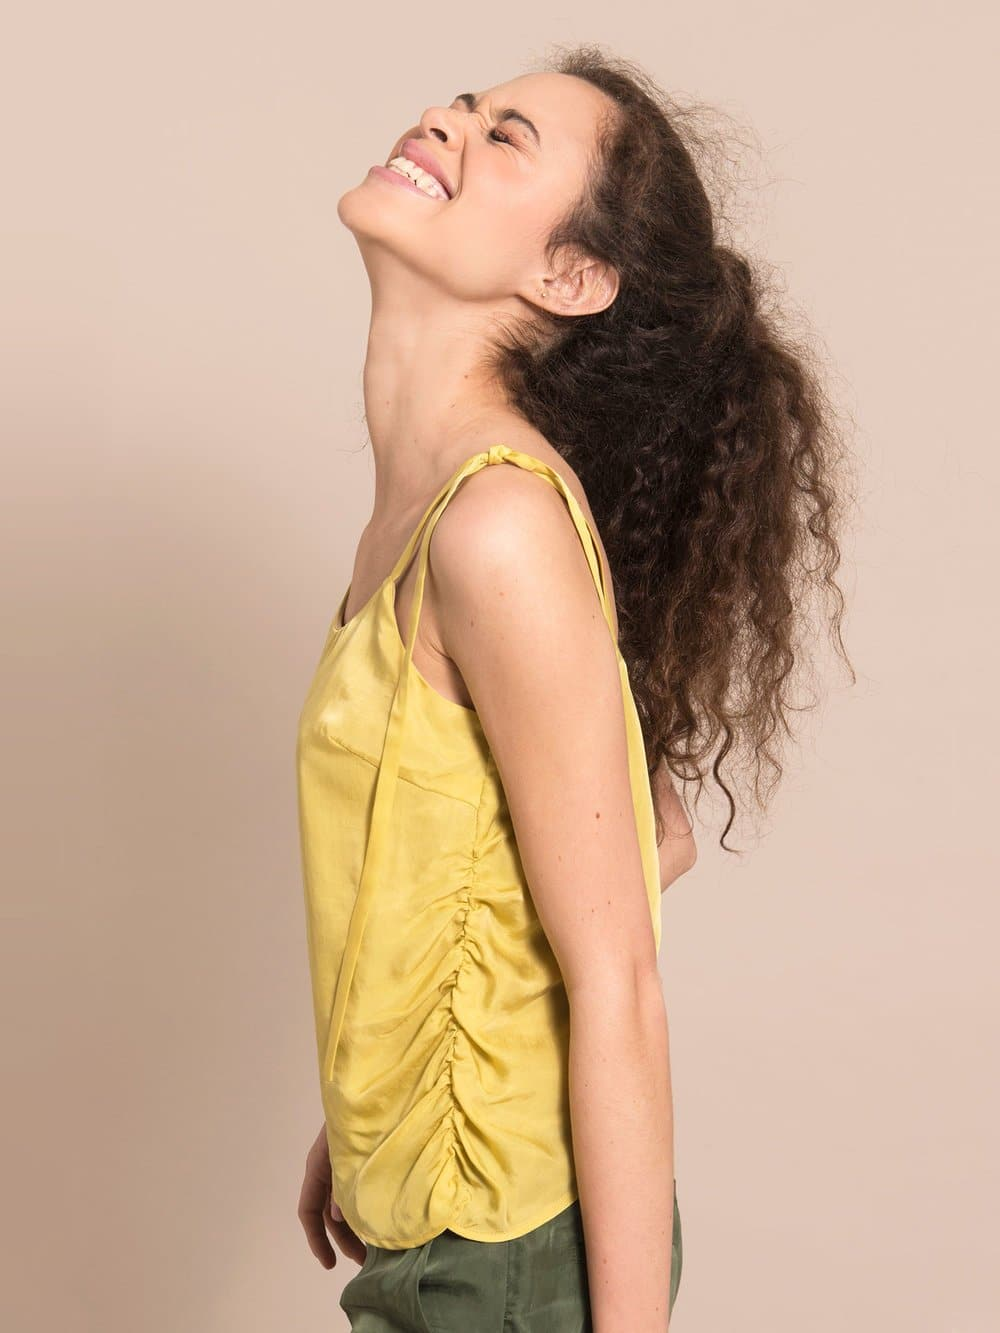 Sideshot of a happy woman wearing a sustainable yellow top with gathers on the side